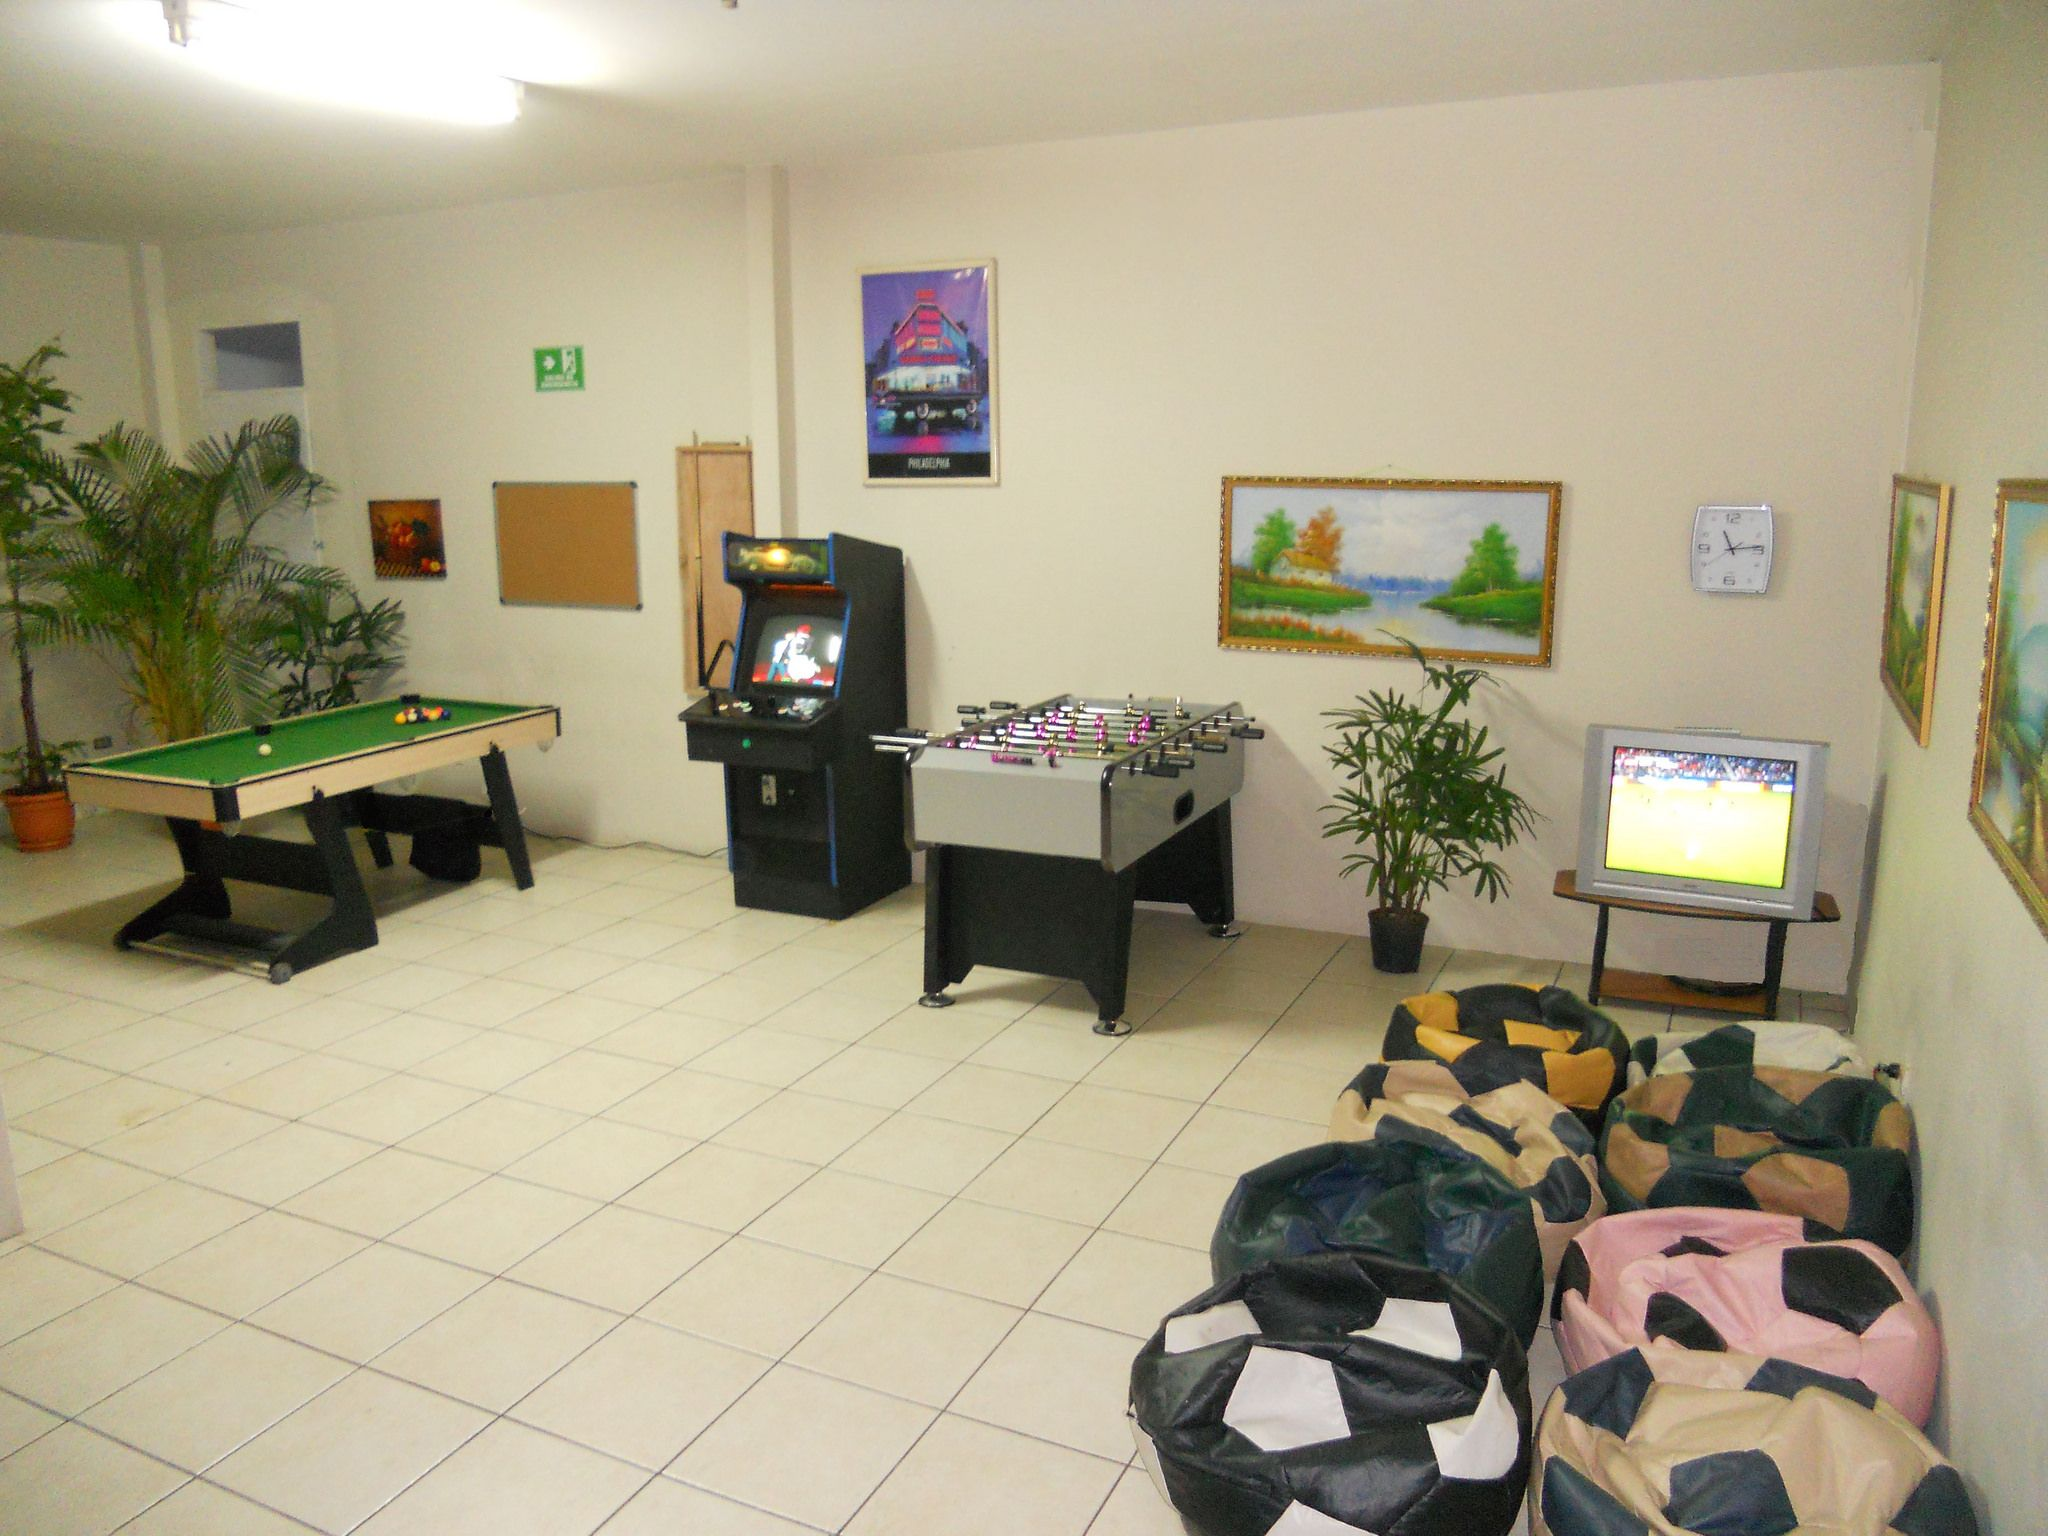 Call Center Game Room